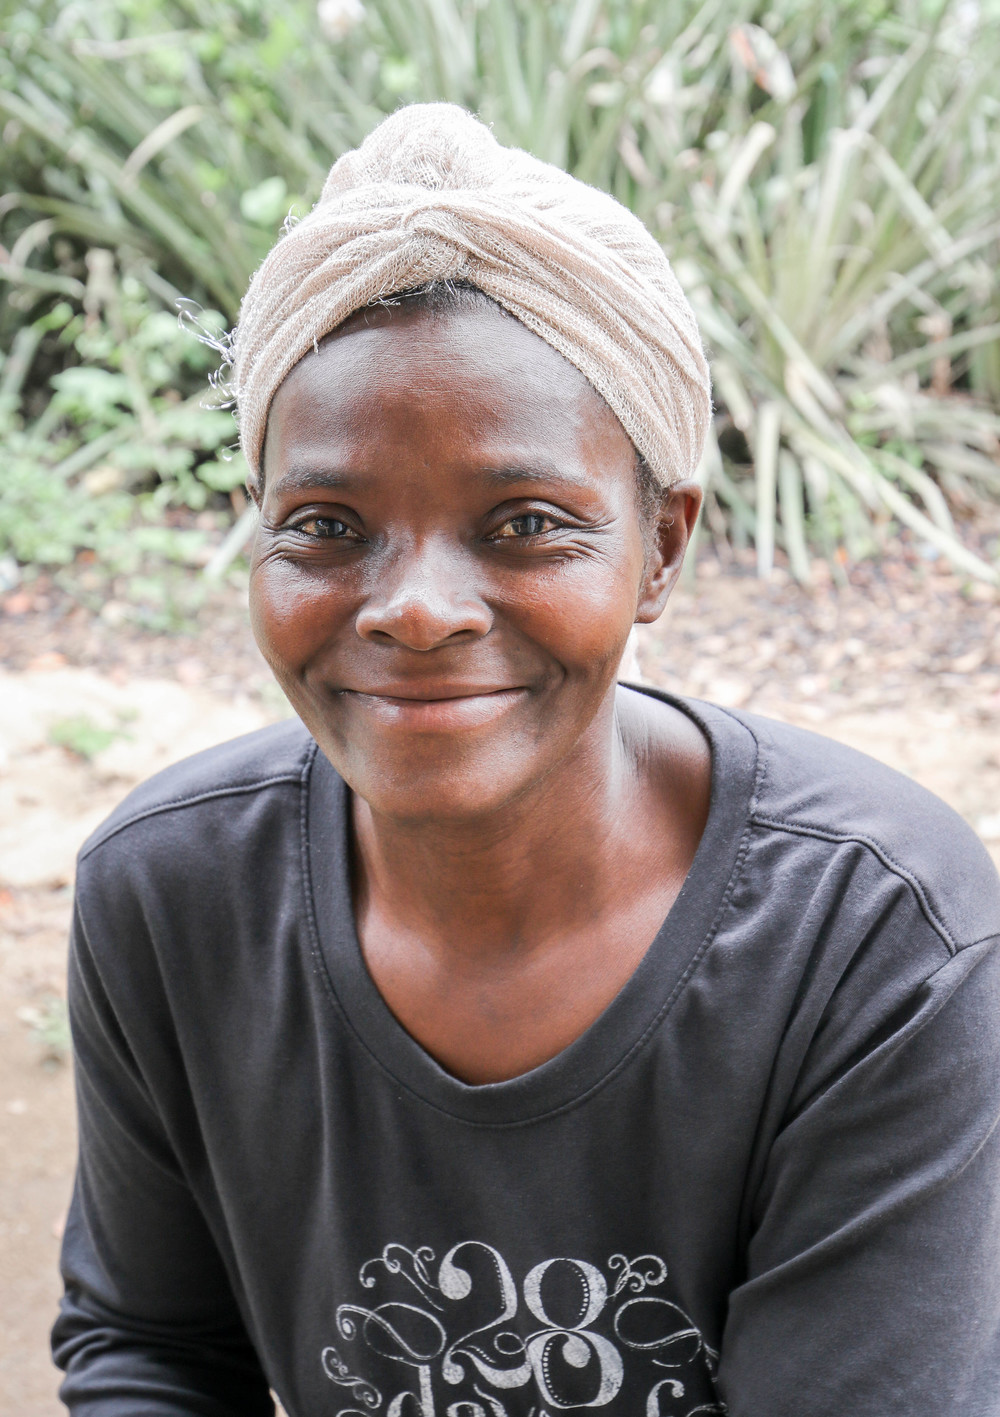 Deymen Elfare  -- Cooperative member and farmer in Mombin Crochu who helped in the group's cashew processing